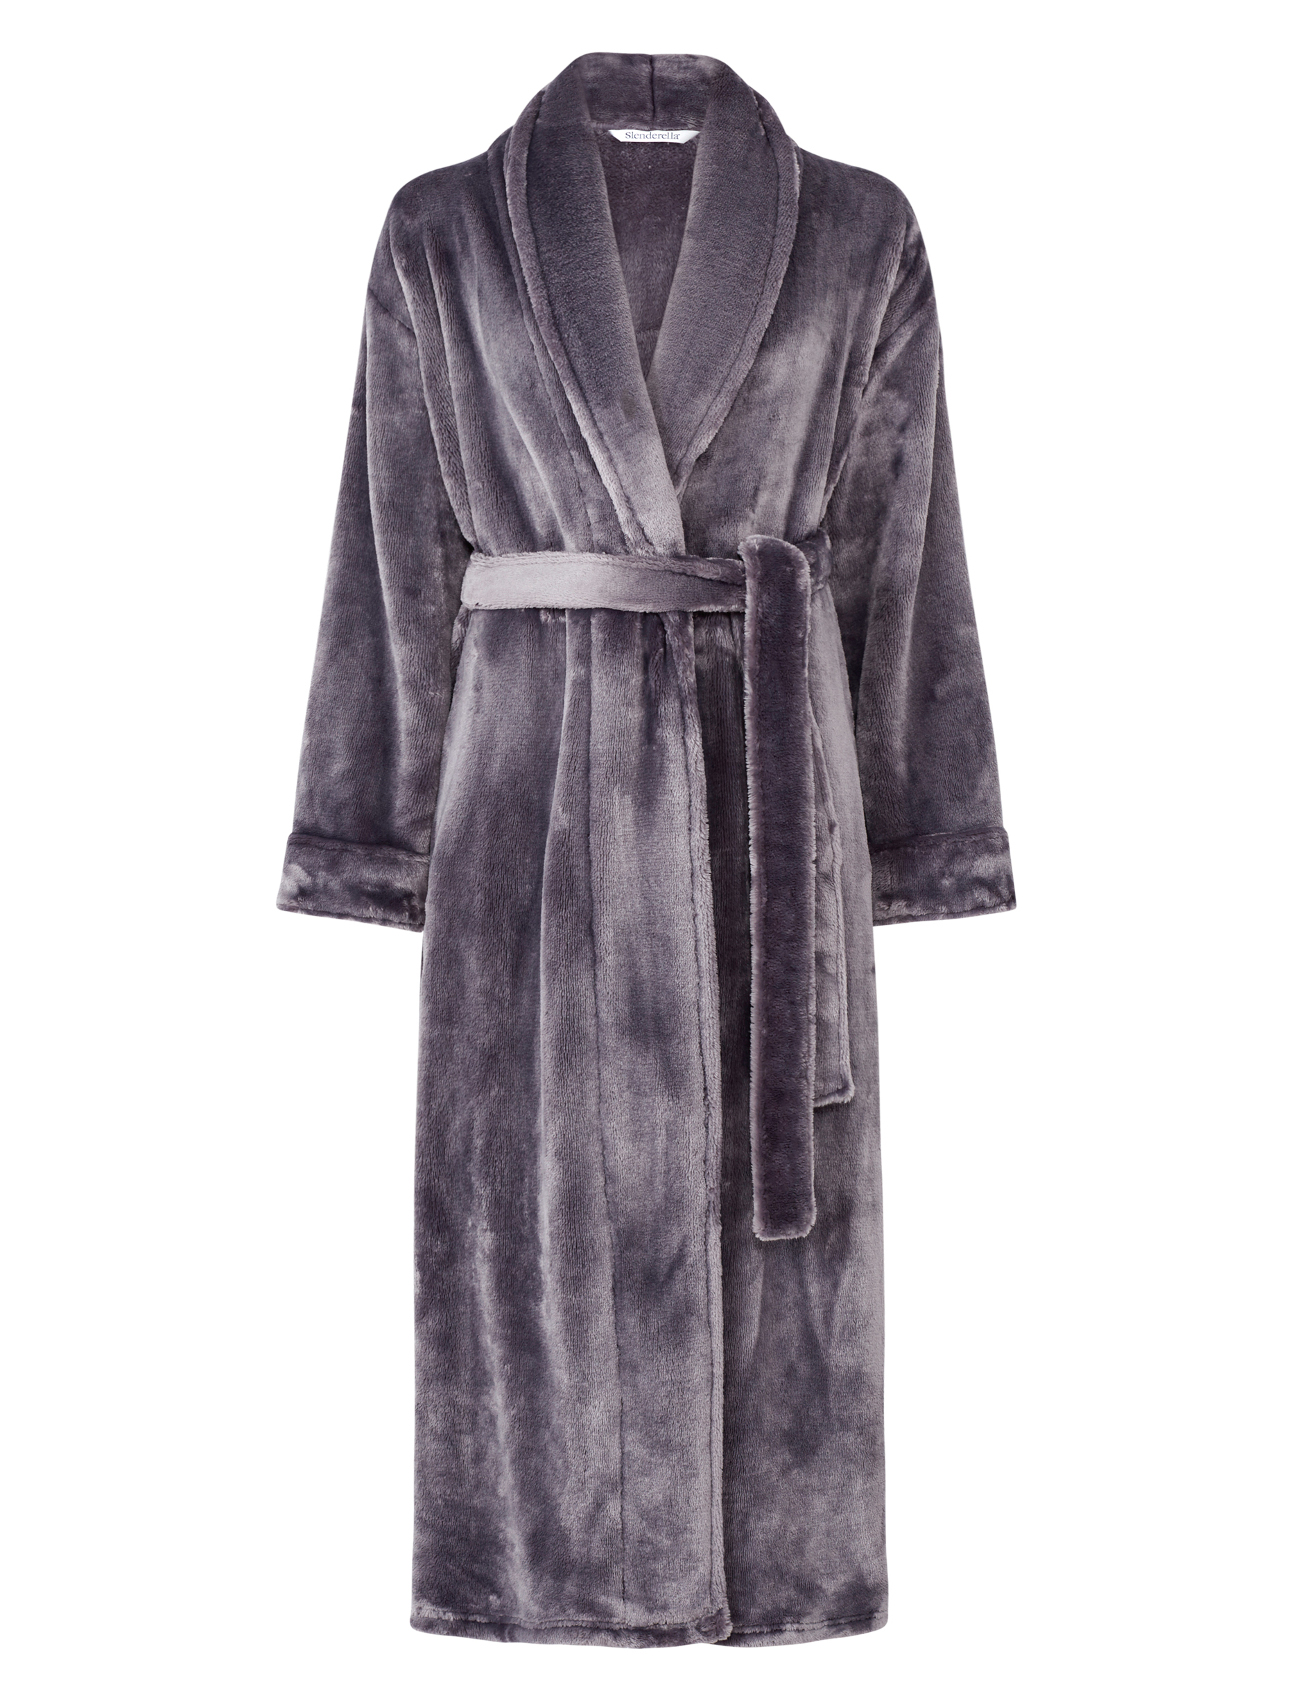 Shop stylish dressing gowns & robes for women. Browse towelling gowns for a chic addition to your essentials. Next day delivery & free returns available. Women's Dressing Gowns & Robes. Grey Star Knit Look Fleece Robe. £ Grey Heart Print Robe. £ Navy Star .